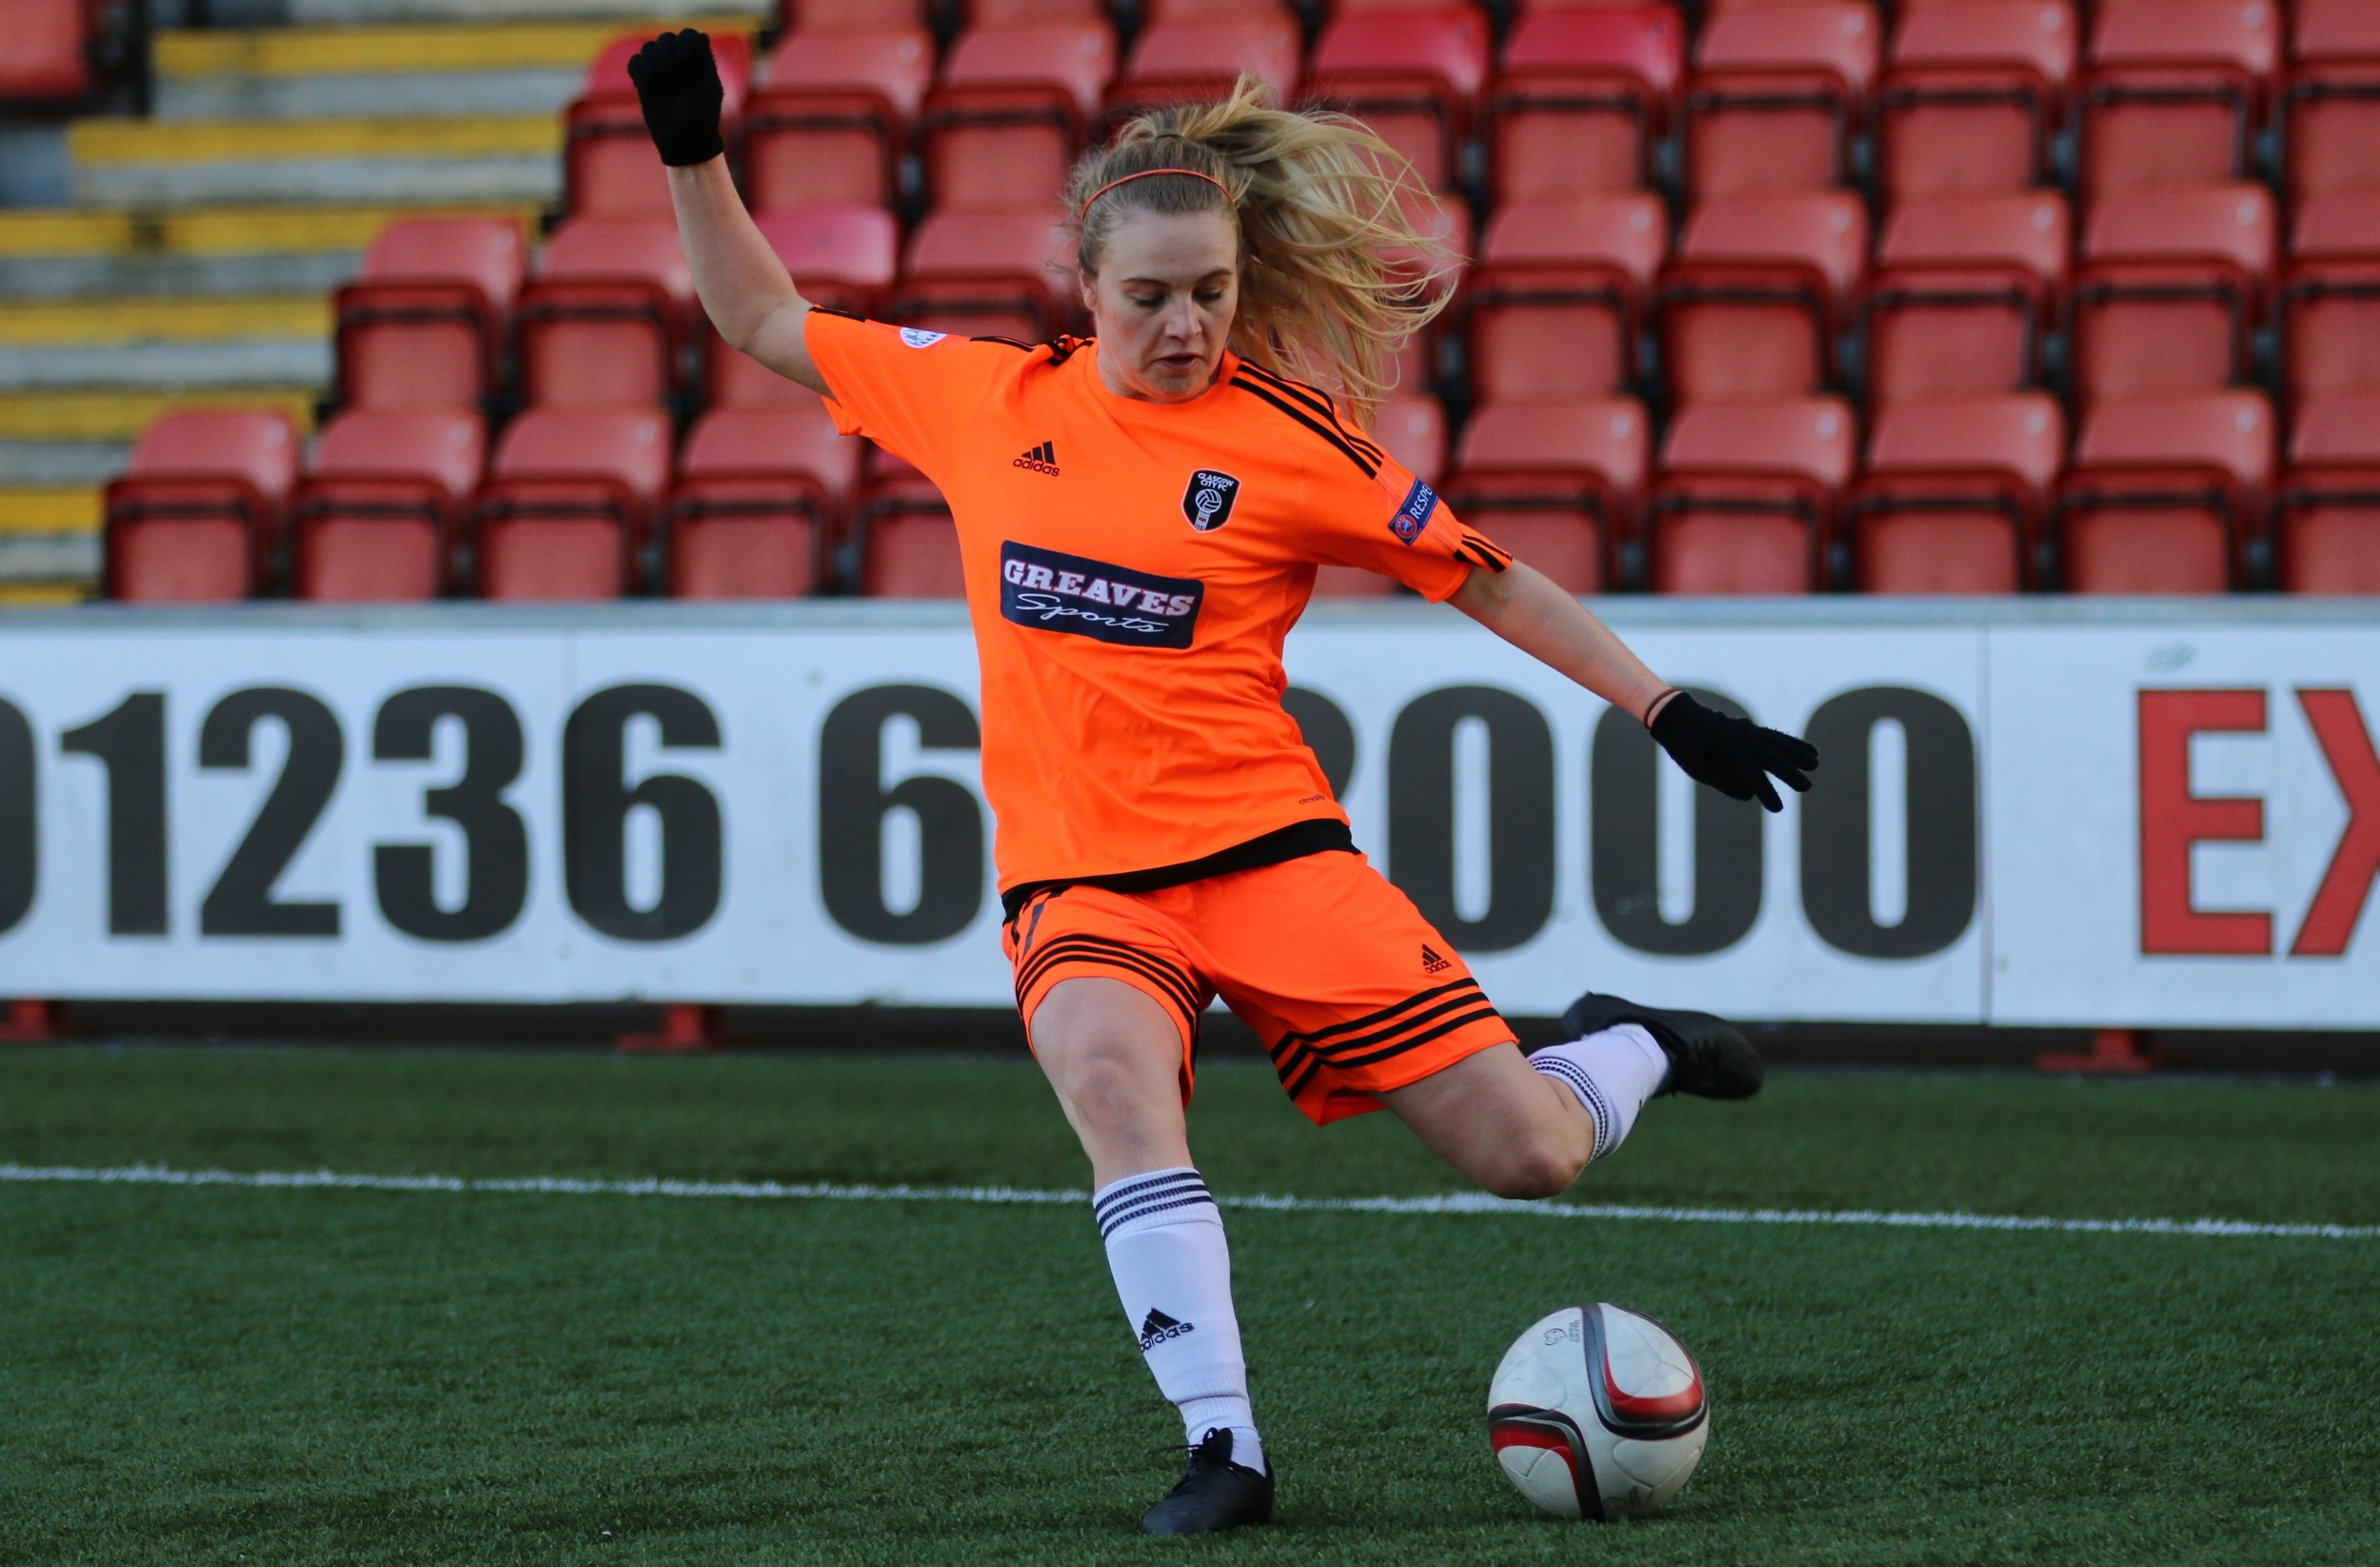 Fiona Brown in action.